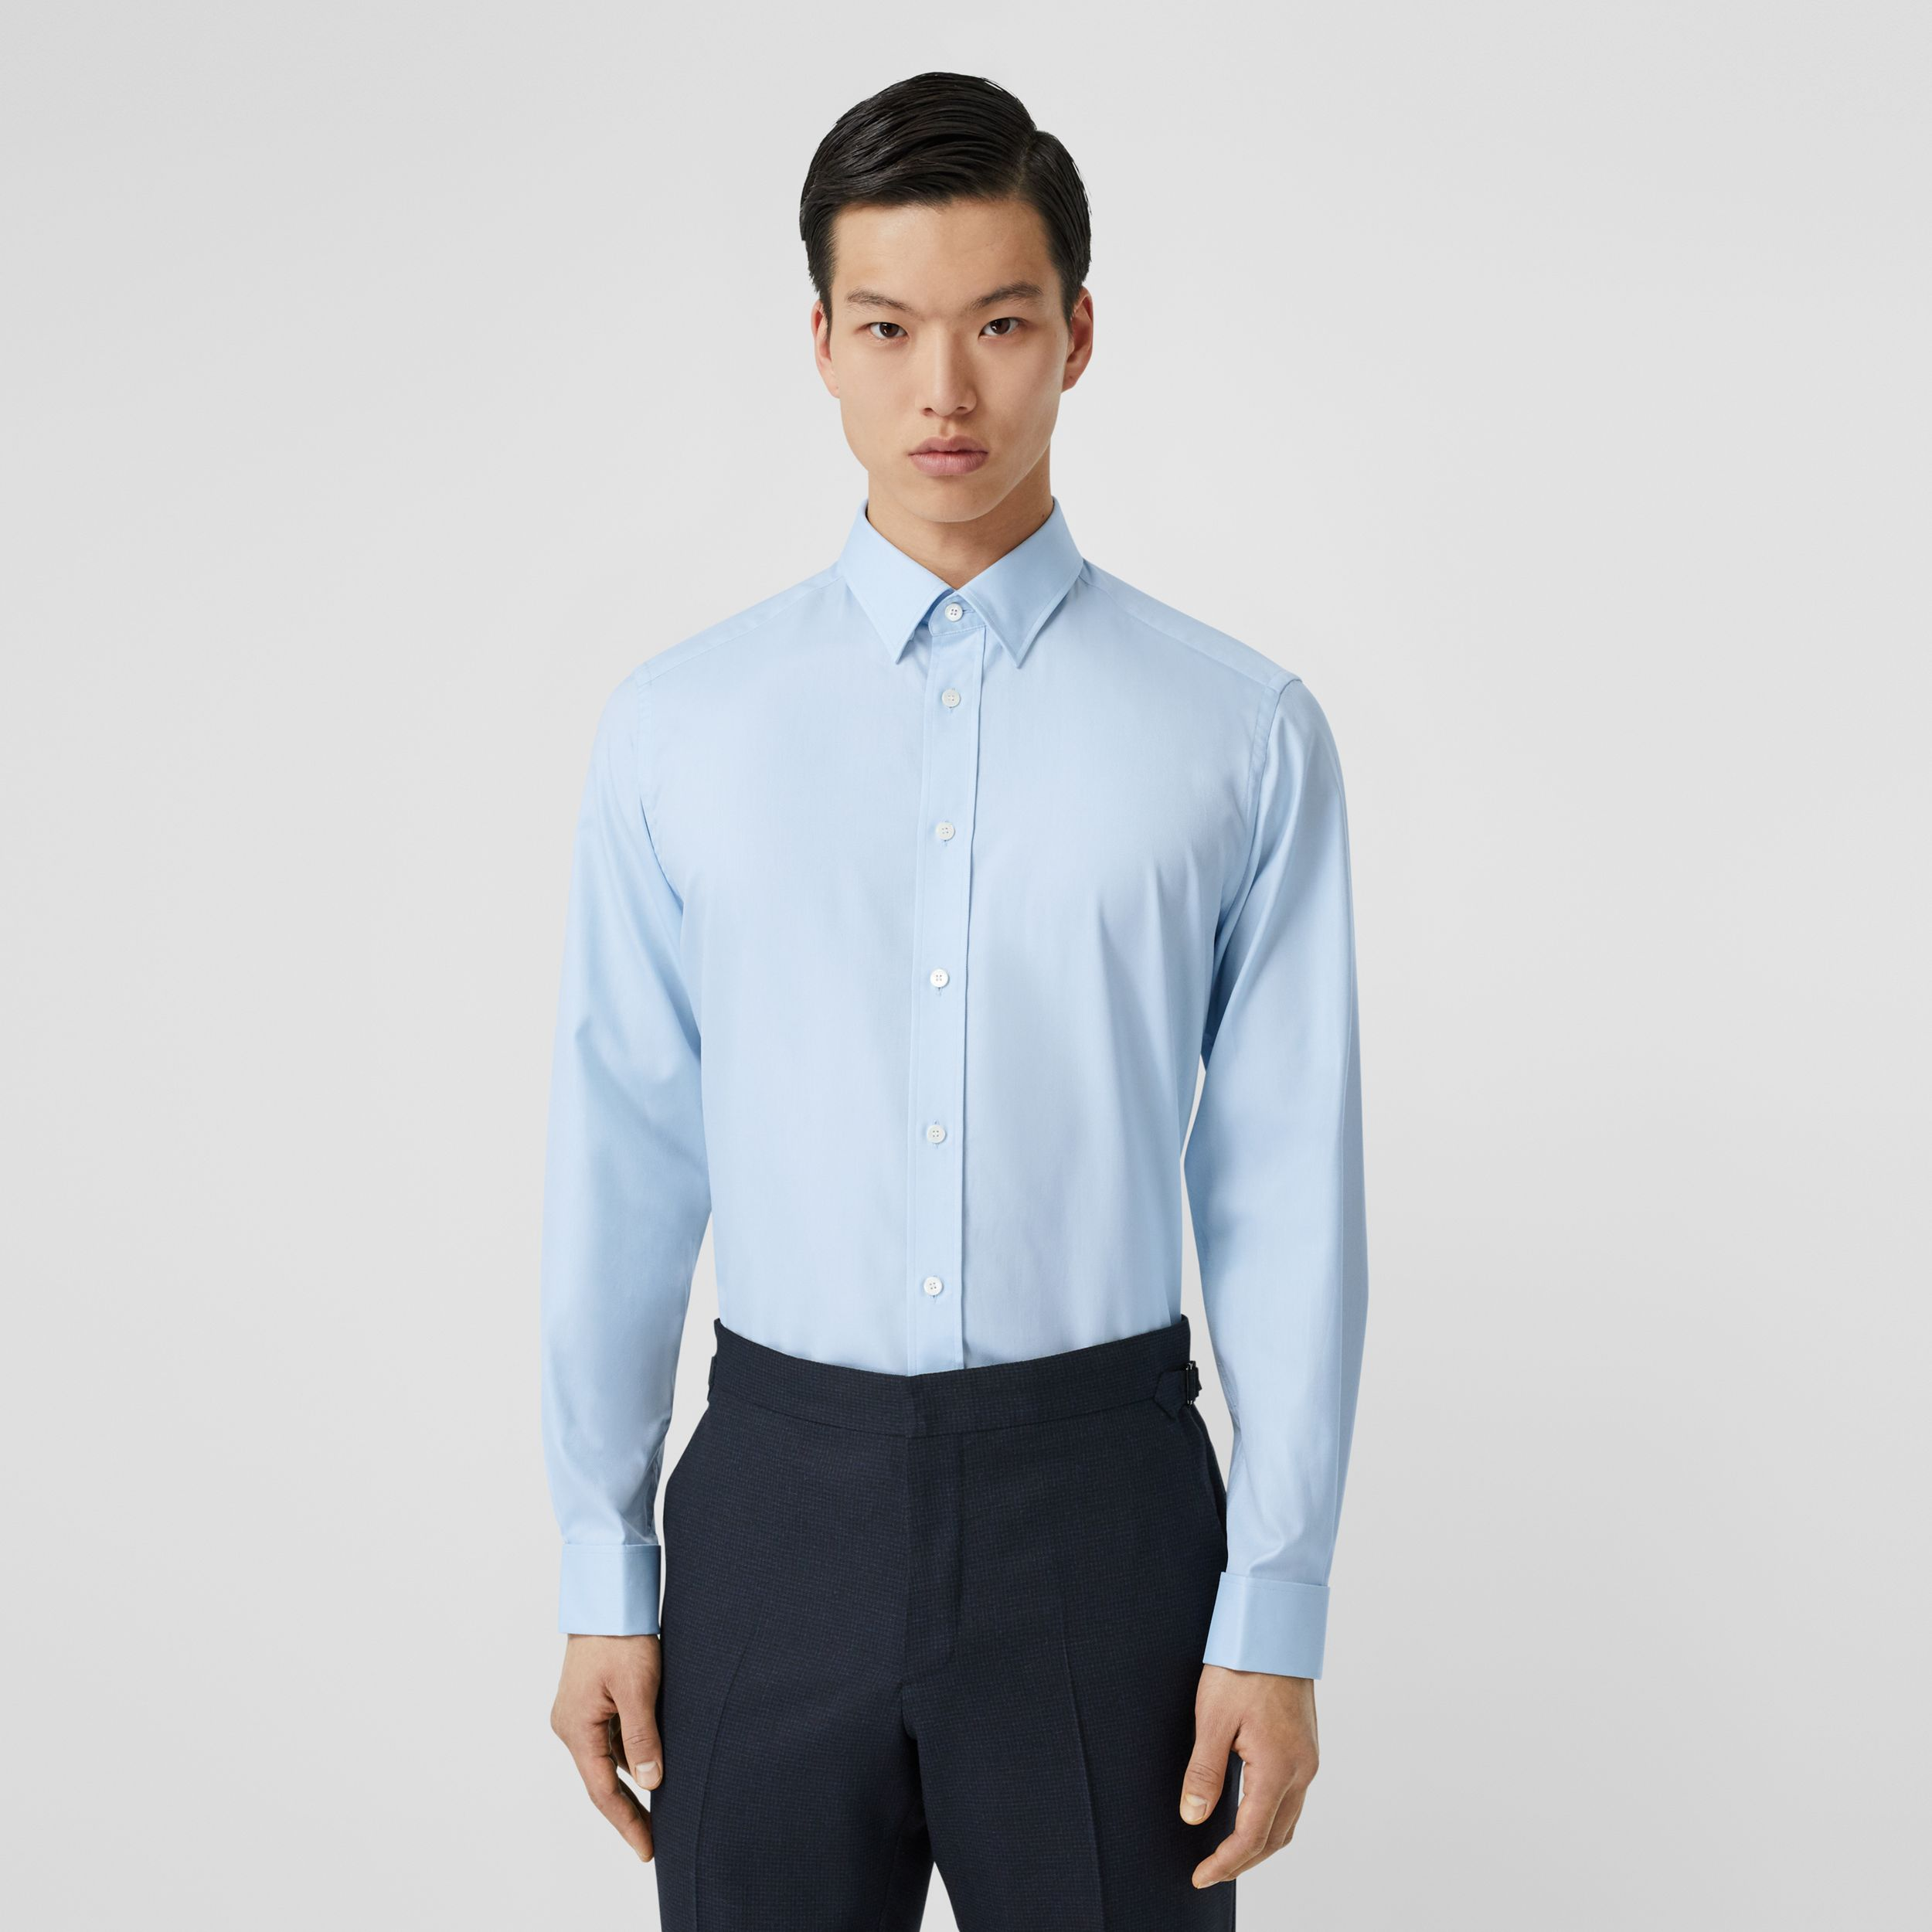 Classic Fit Monogram Motif Cotton Oxford Shirt in Pale Blue - Men | Burberry - 1